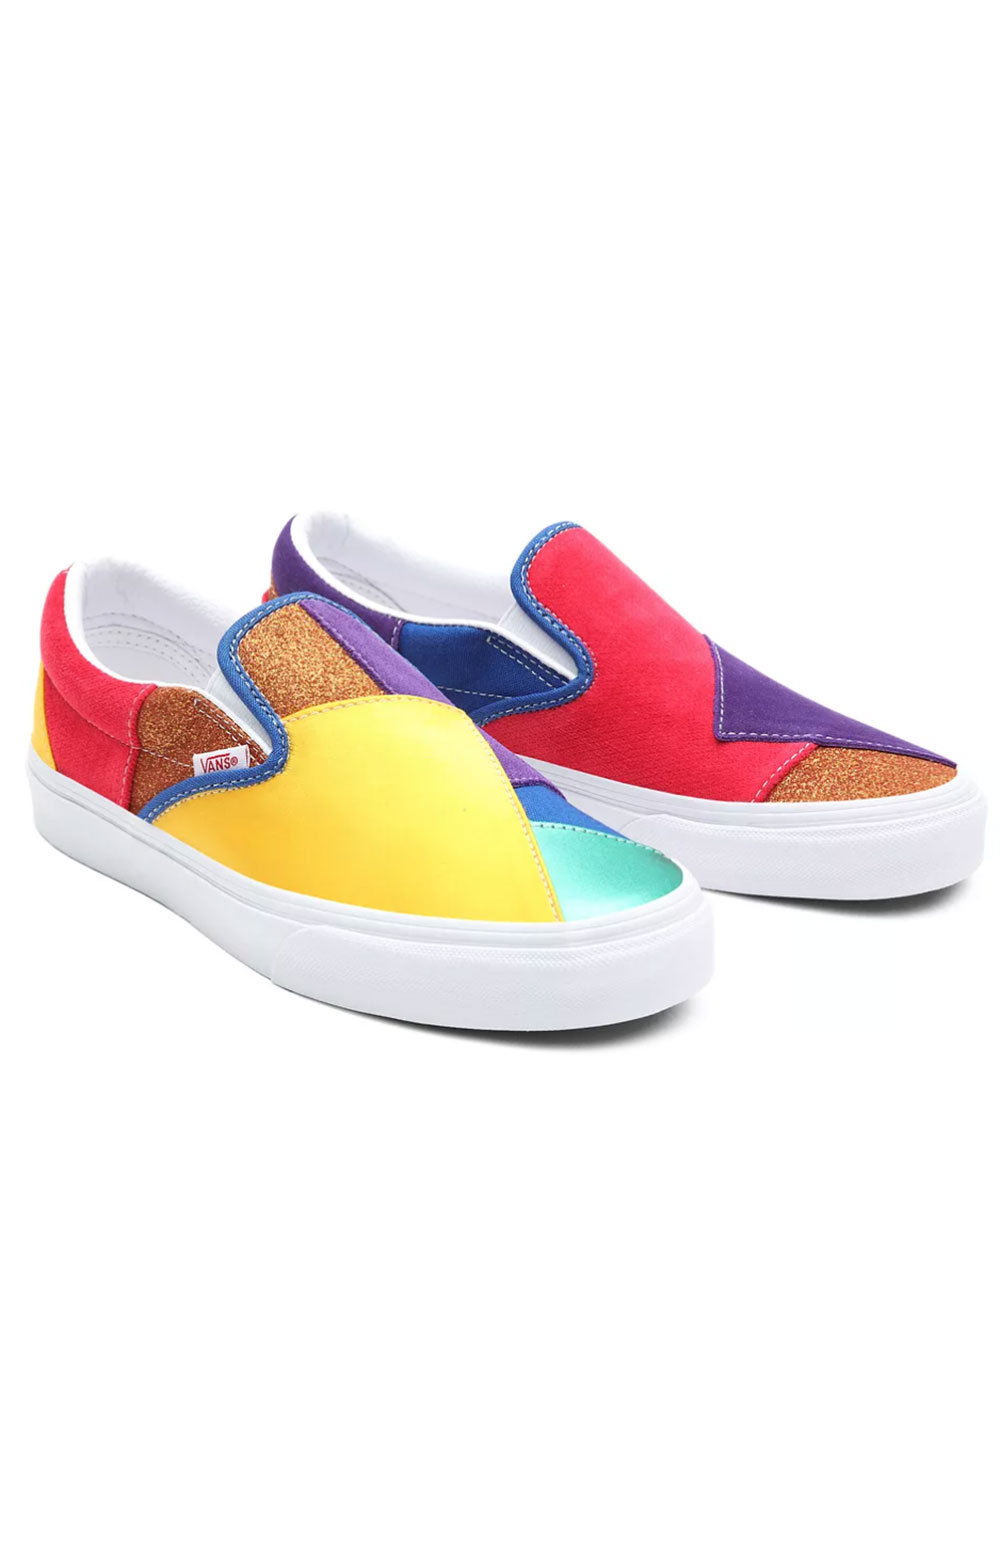 (3TB44B) Pride Classic Slip-On Shoes - Patchwork  6